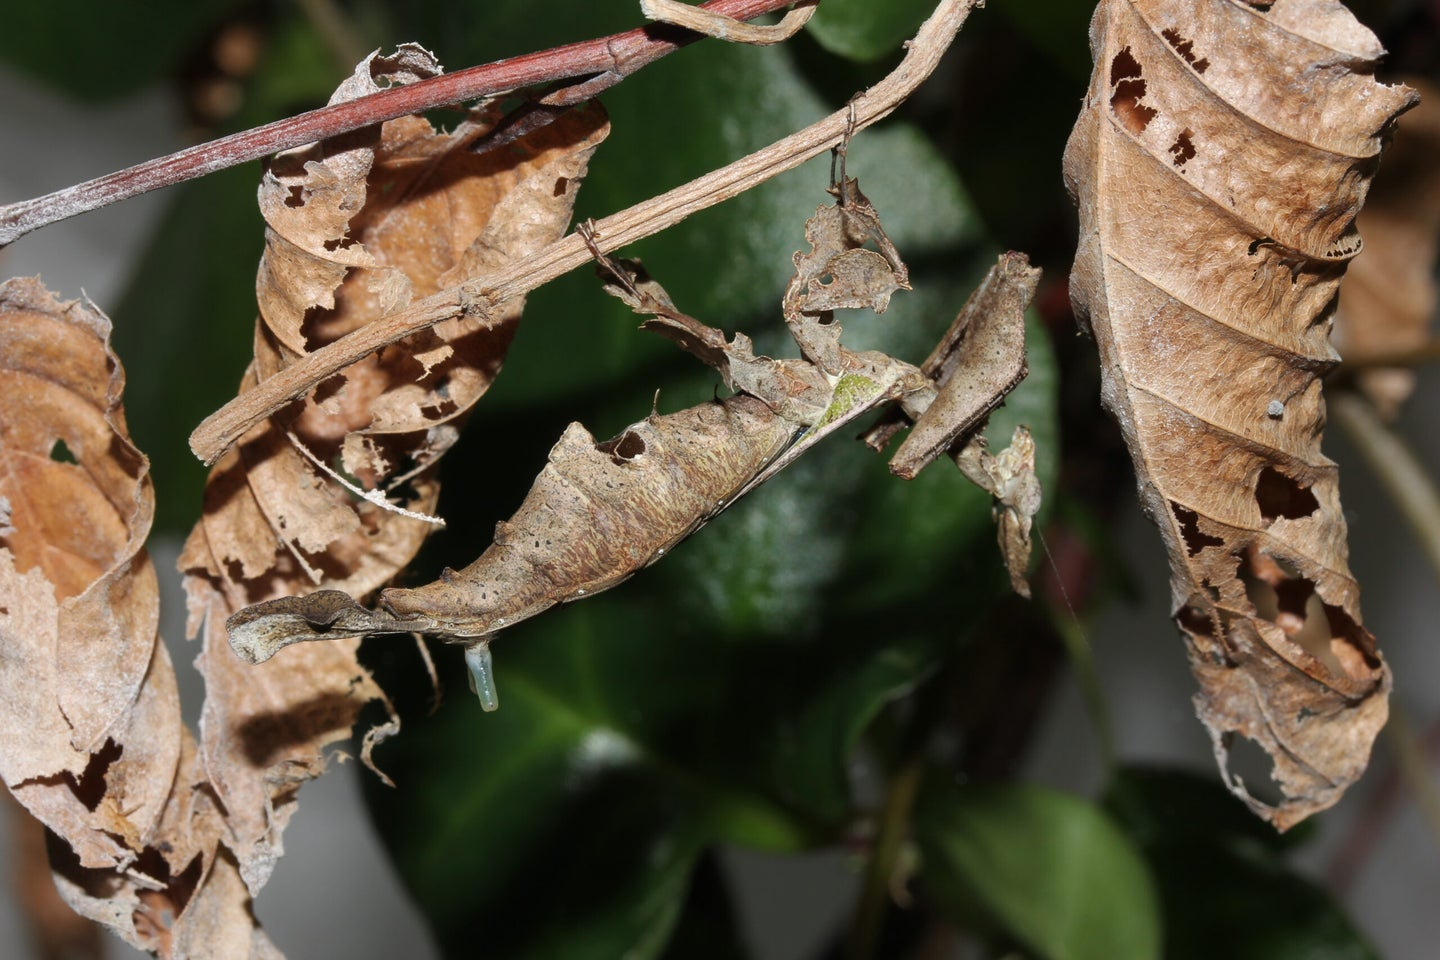 An image of the praying mantis surrounded by leaves.